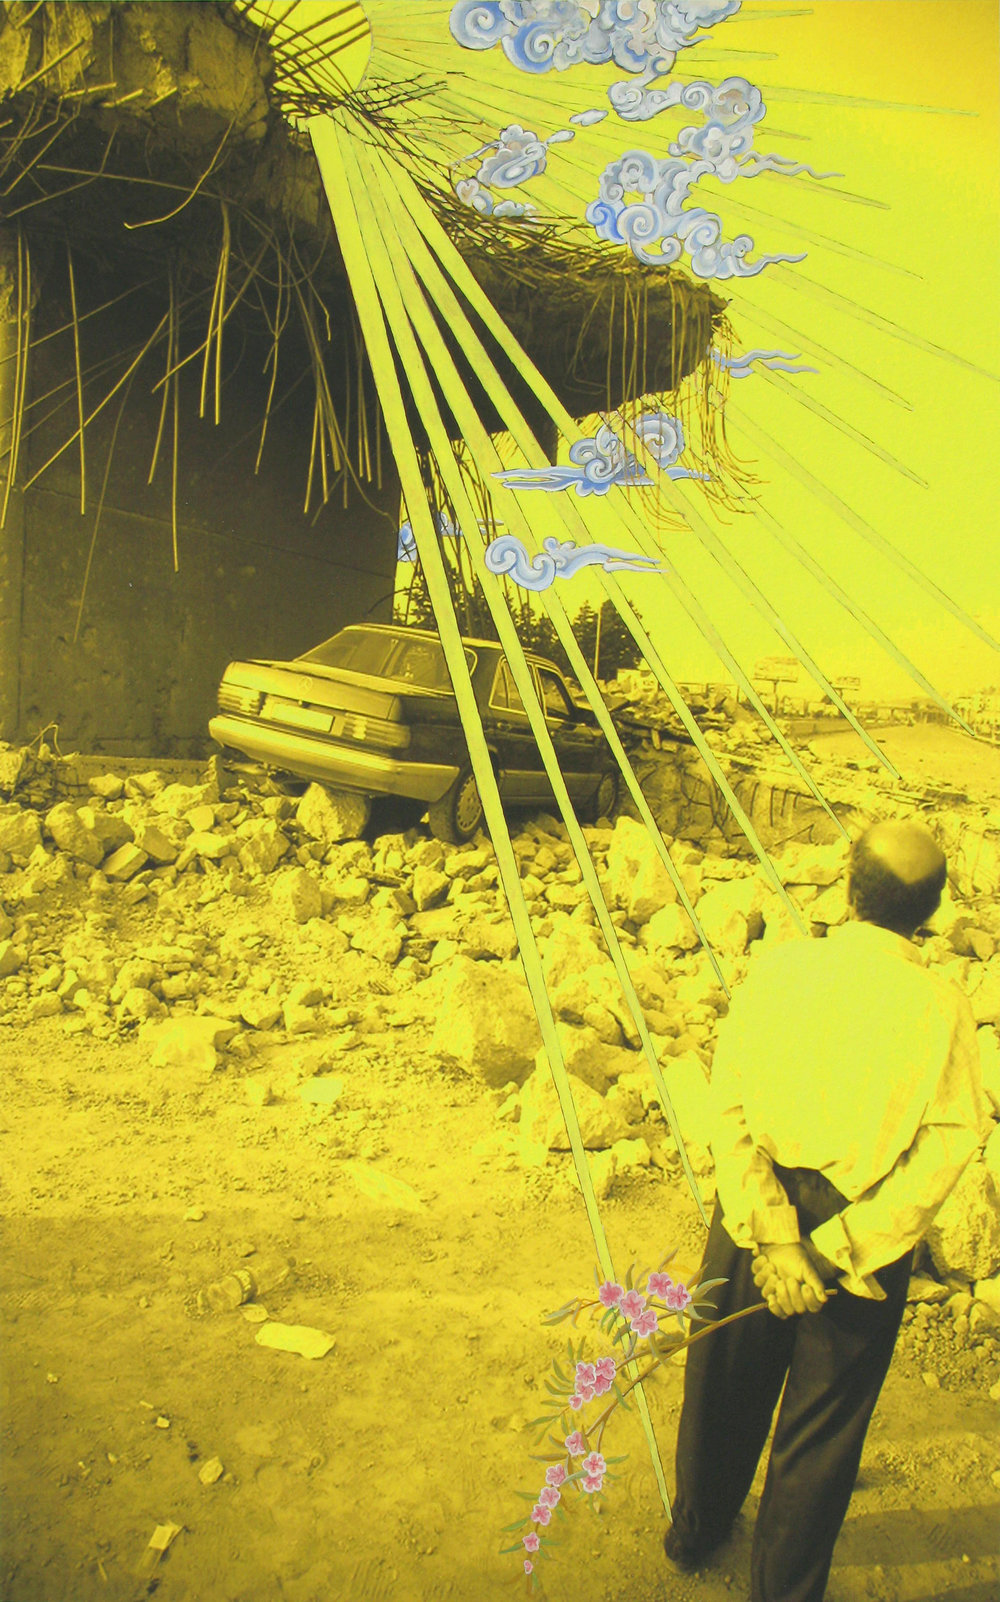 REVEAL: YELLOW CRASH, 2008